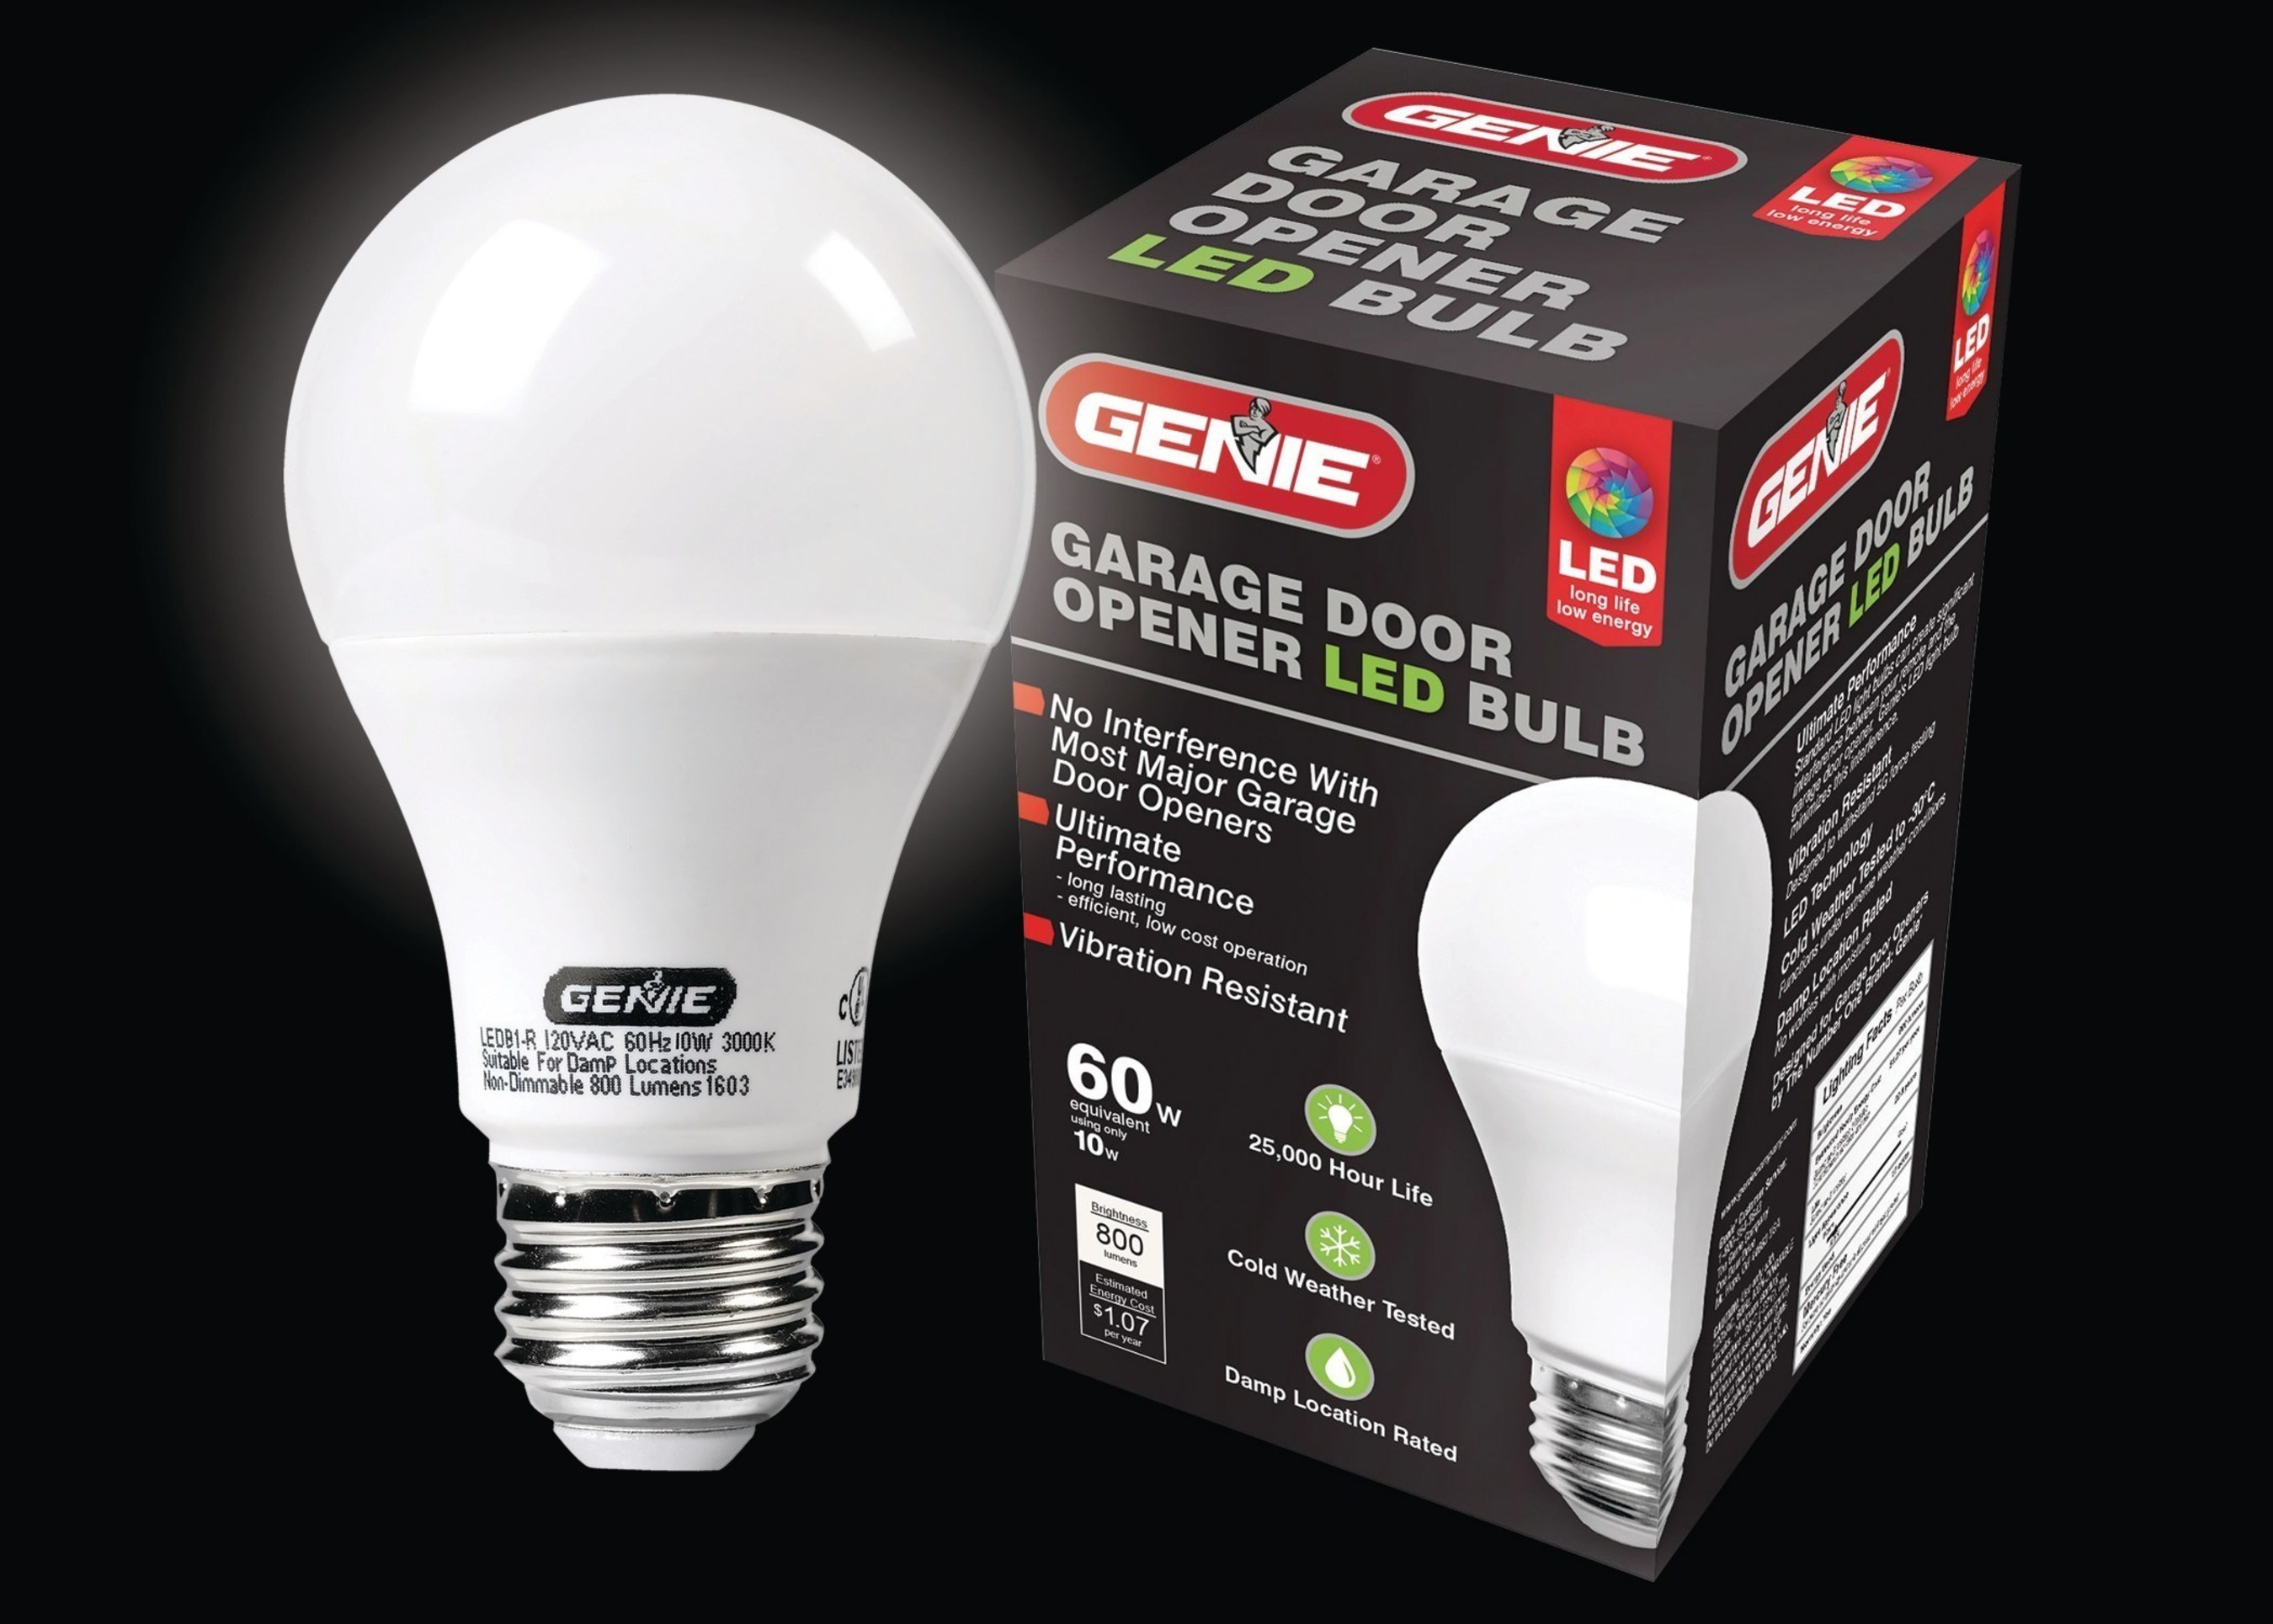 The Genie Company Introduces A New LED Bulb For Garage Door Openers